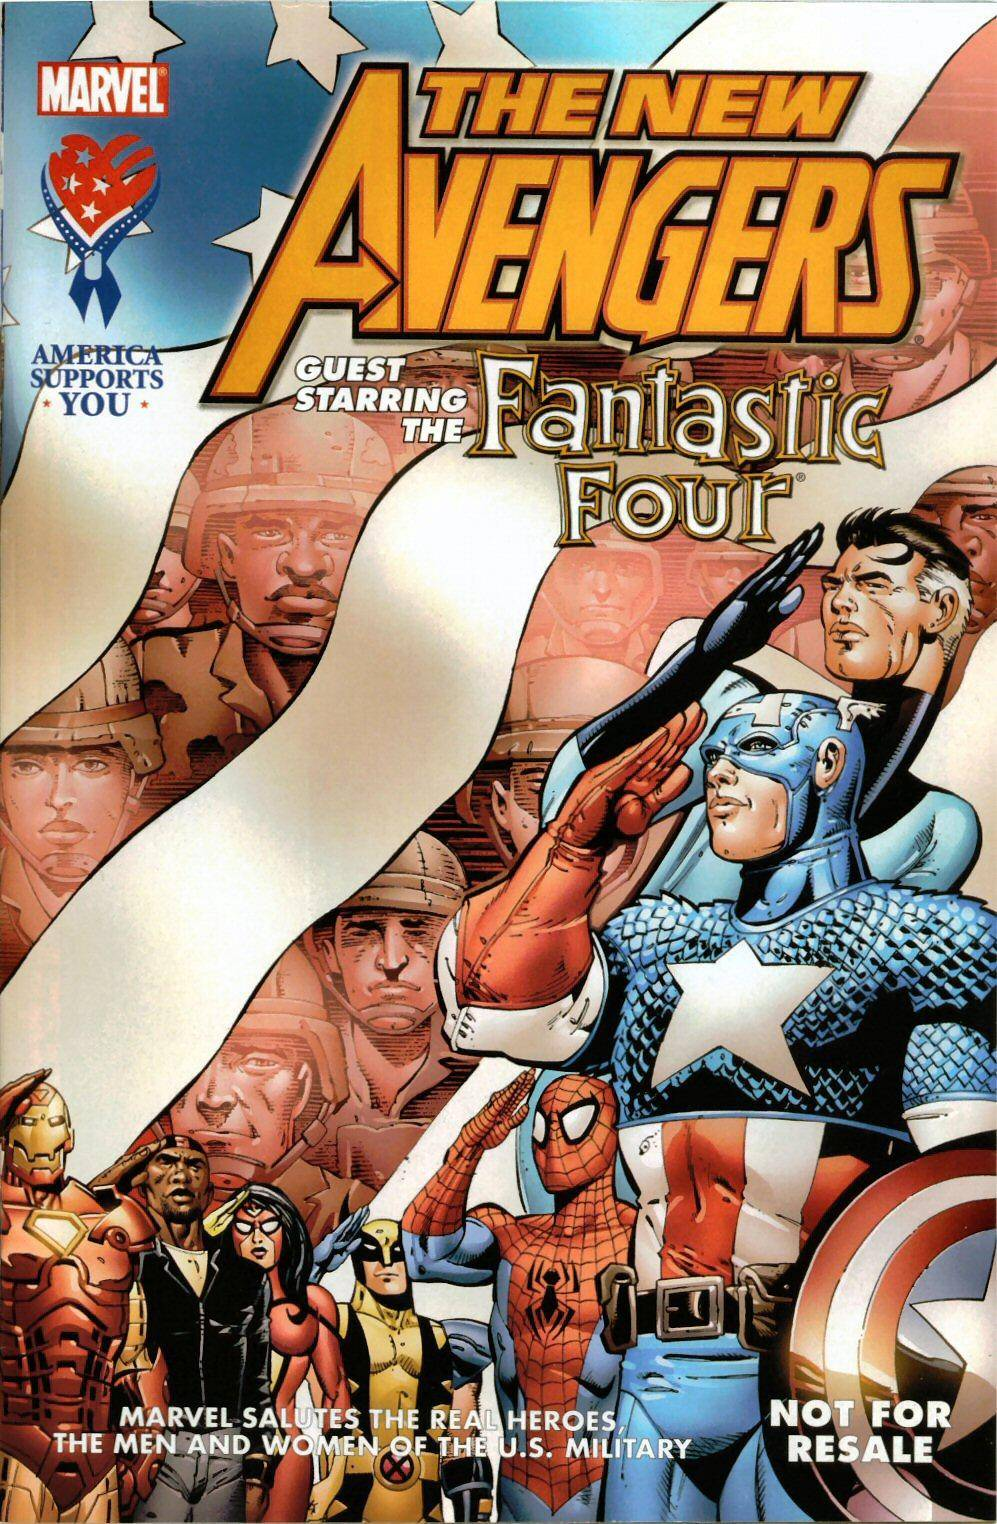 AAFES 01th Edition - New Avengers - Special Guest 2005